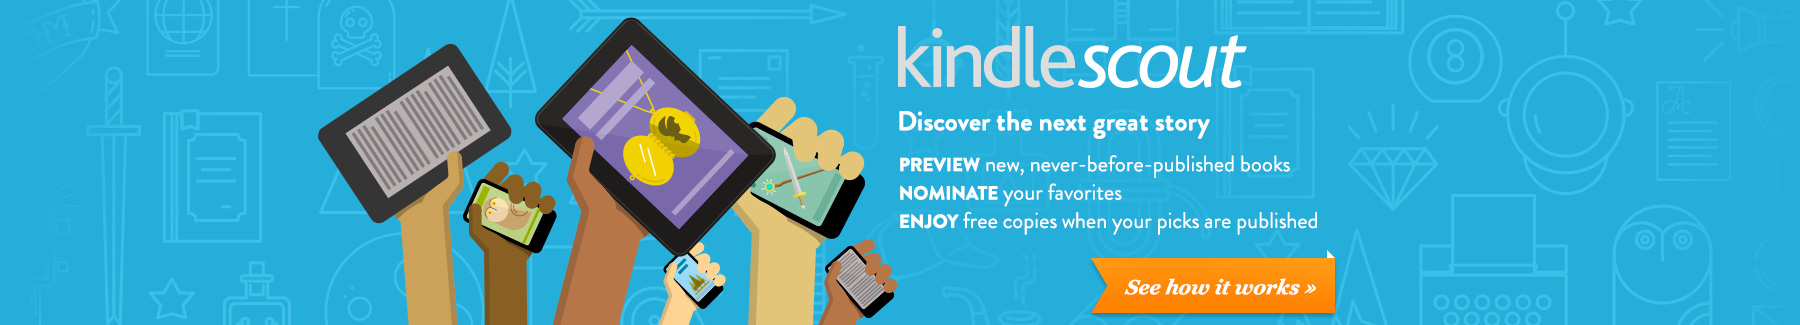 Kindle Scout: discover the next great story. Preview new, never-before-published books. Nominate your favorites. Enjoy free copies when your picks are published.